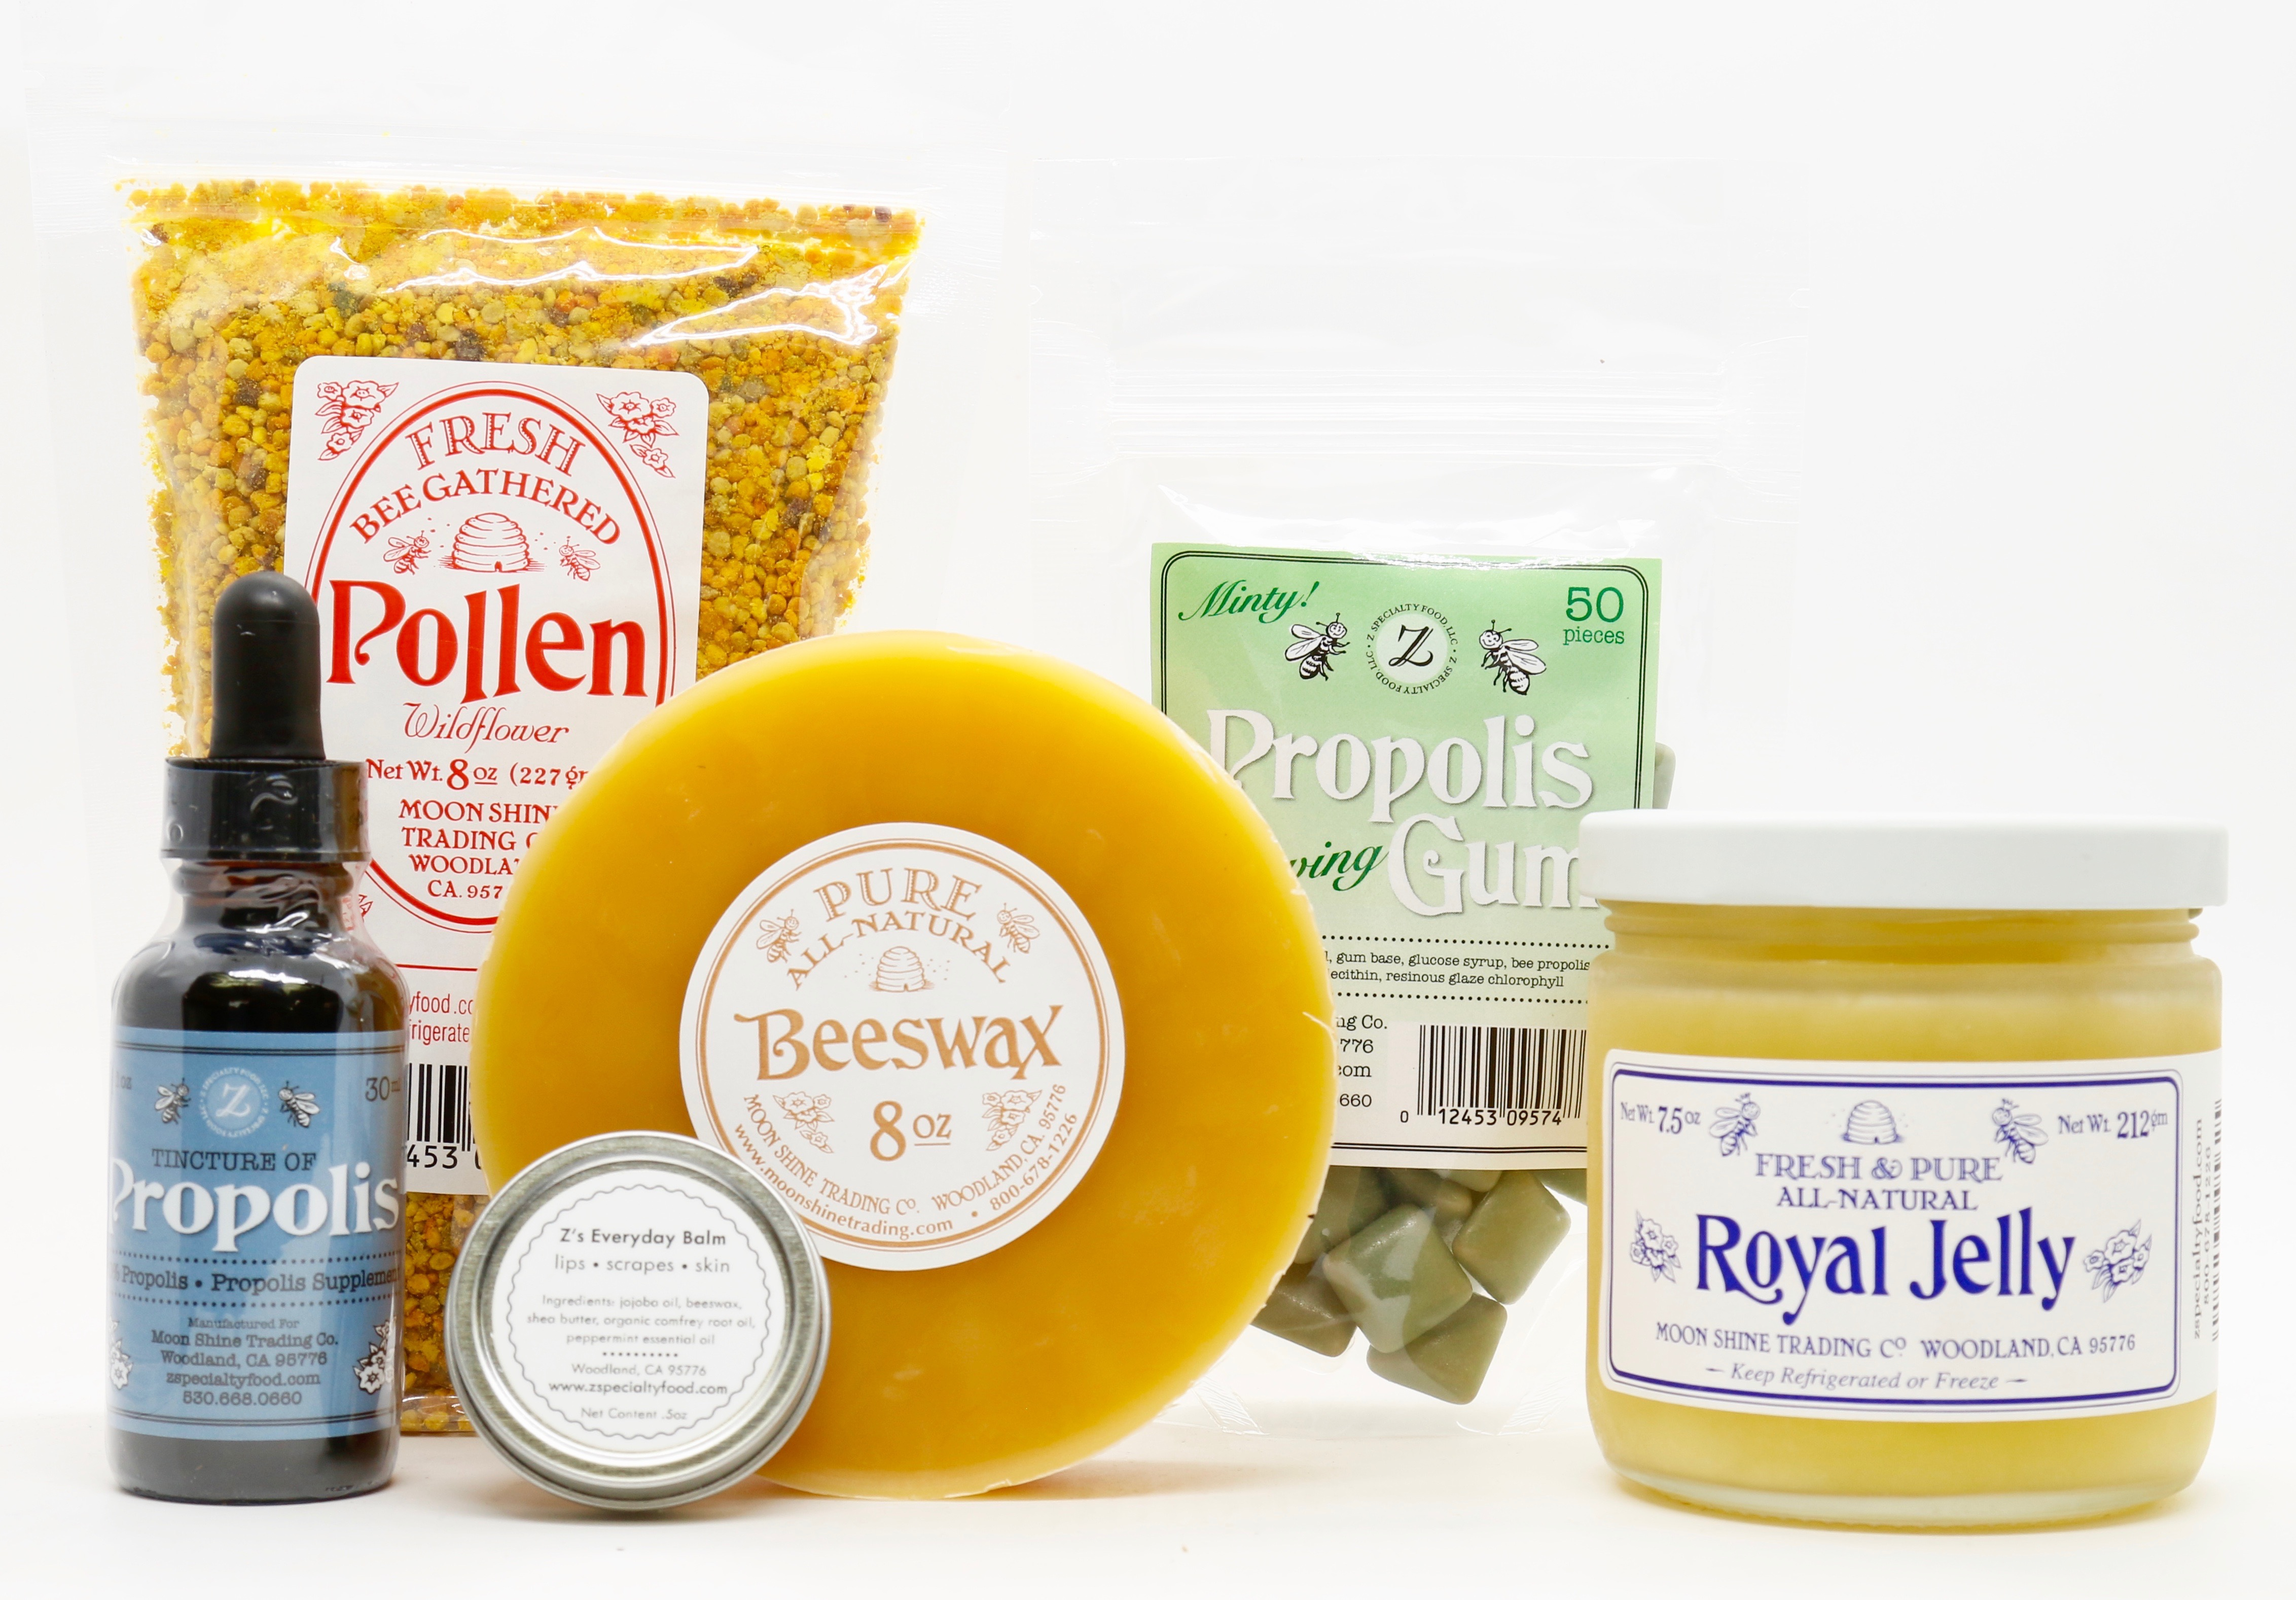 Our Moon Shine Trading Company 100% Pure Beeswax is produced exclusively by US honey bees. We also take pride in offering the best tasting fresh bee pollen.